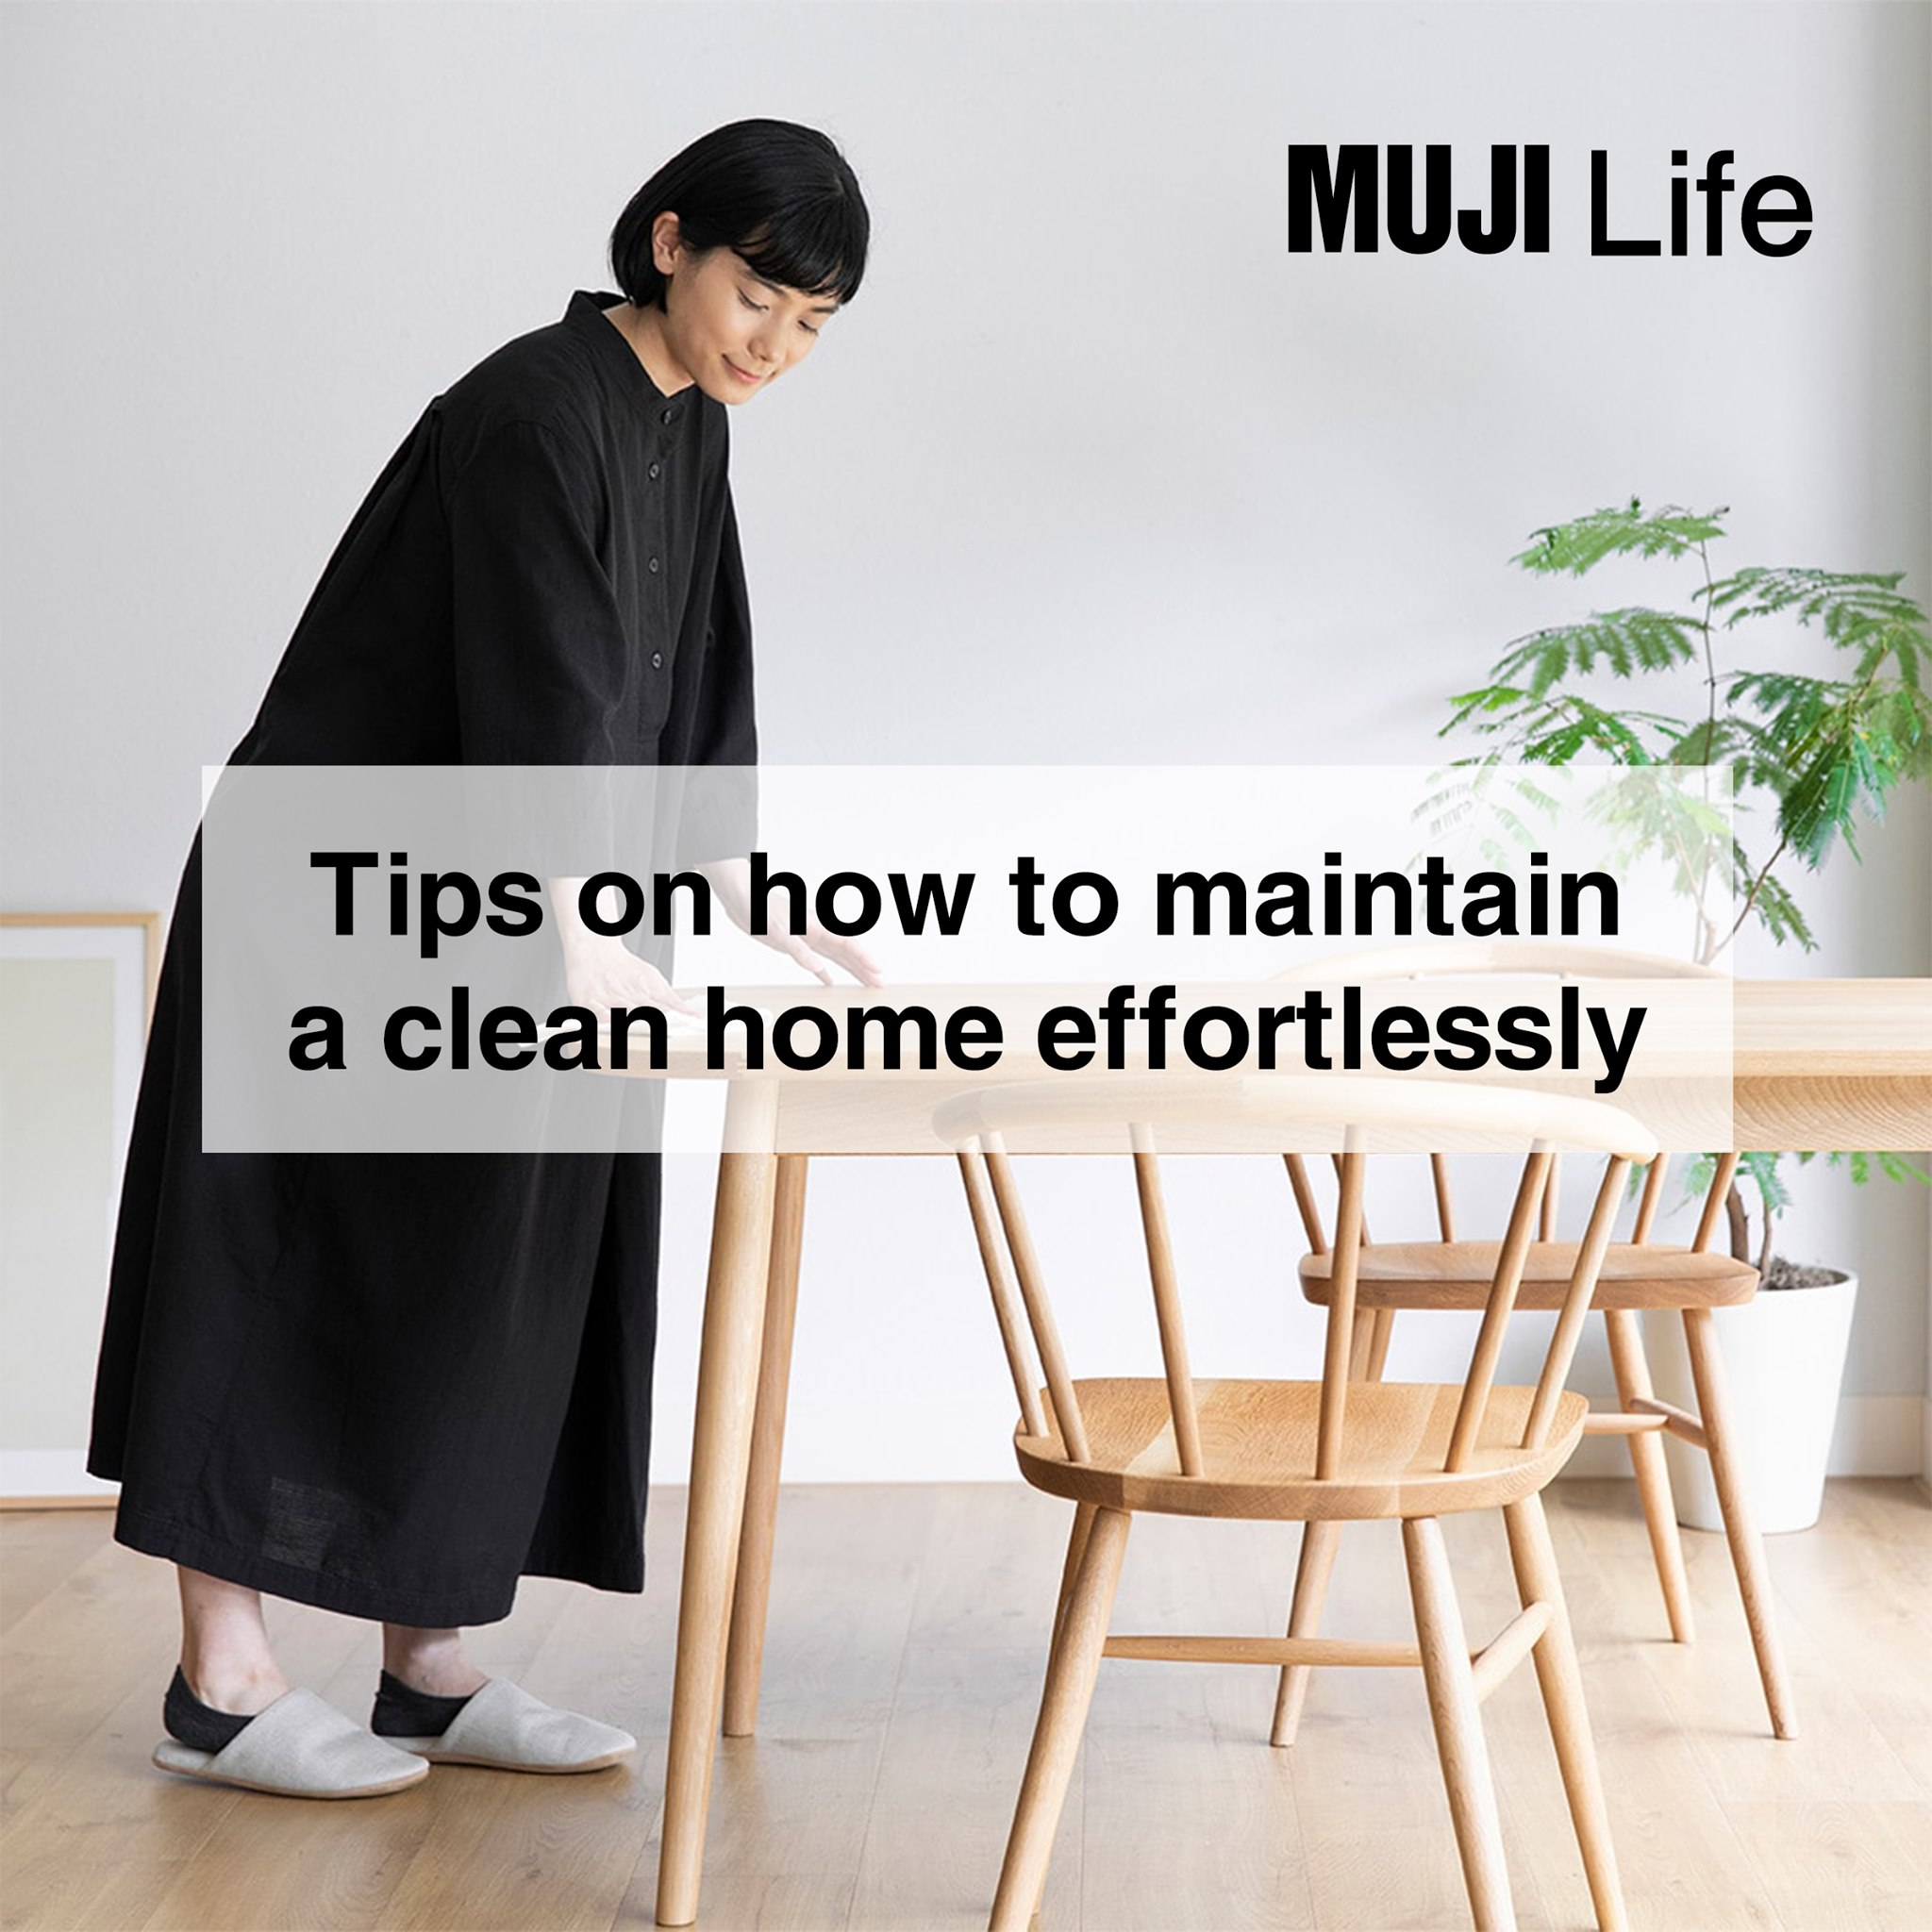 MUJI Life – Tips on how to maintain a clean home effortlessly